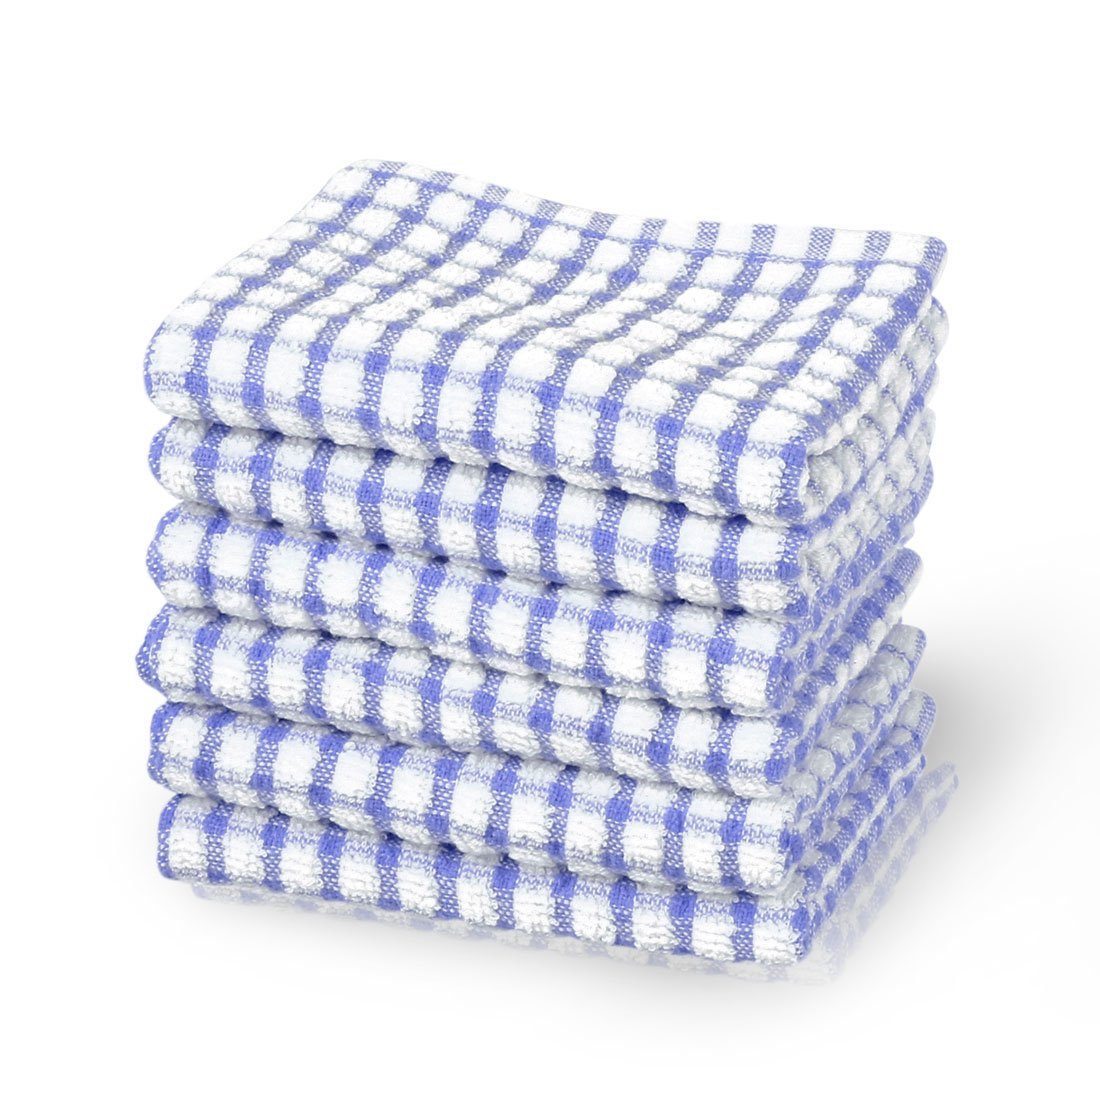 uxcell Cotton Terry Kitchen Towels Dish Cloth, Cleaning Drying Hotel Wash Cloth, 15 x 10.5 inches, pack of 6, Blue